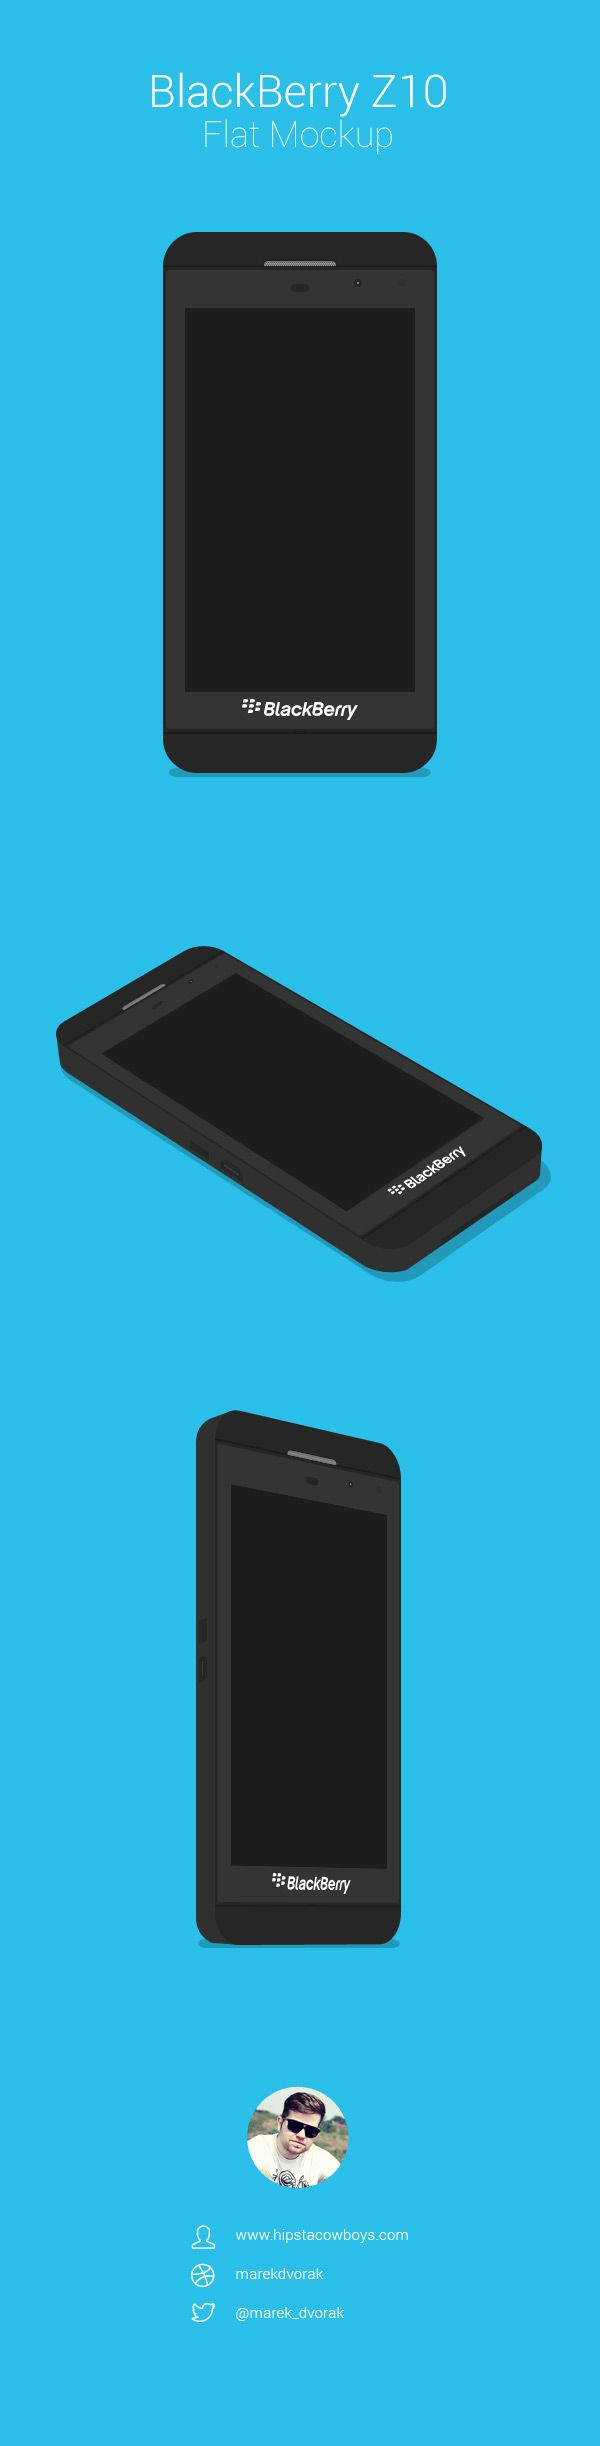 Marek Dvorák from HipstaCowboys.com has created this flat BlackBerry Z10 PSD mock-up that comes in 3 viewing angles. You can easily edit the scre...